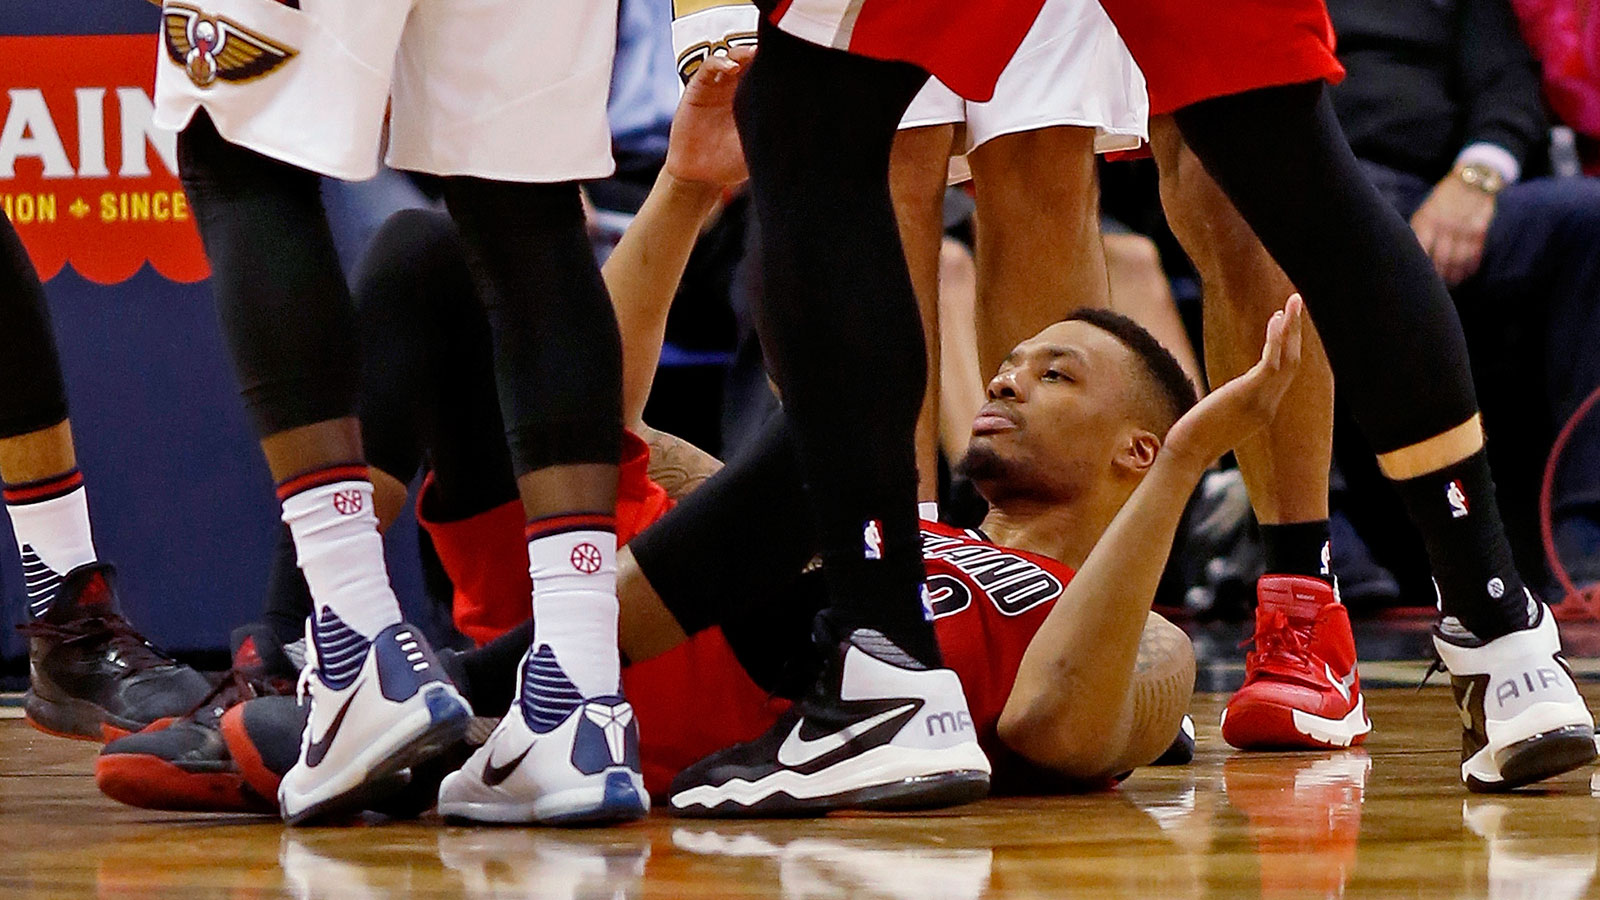 Dame Lillard clotheslined by Kendrick Perkins, shakes it off: 'I'm from Oakland'